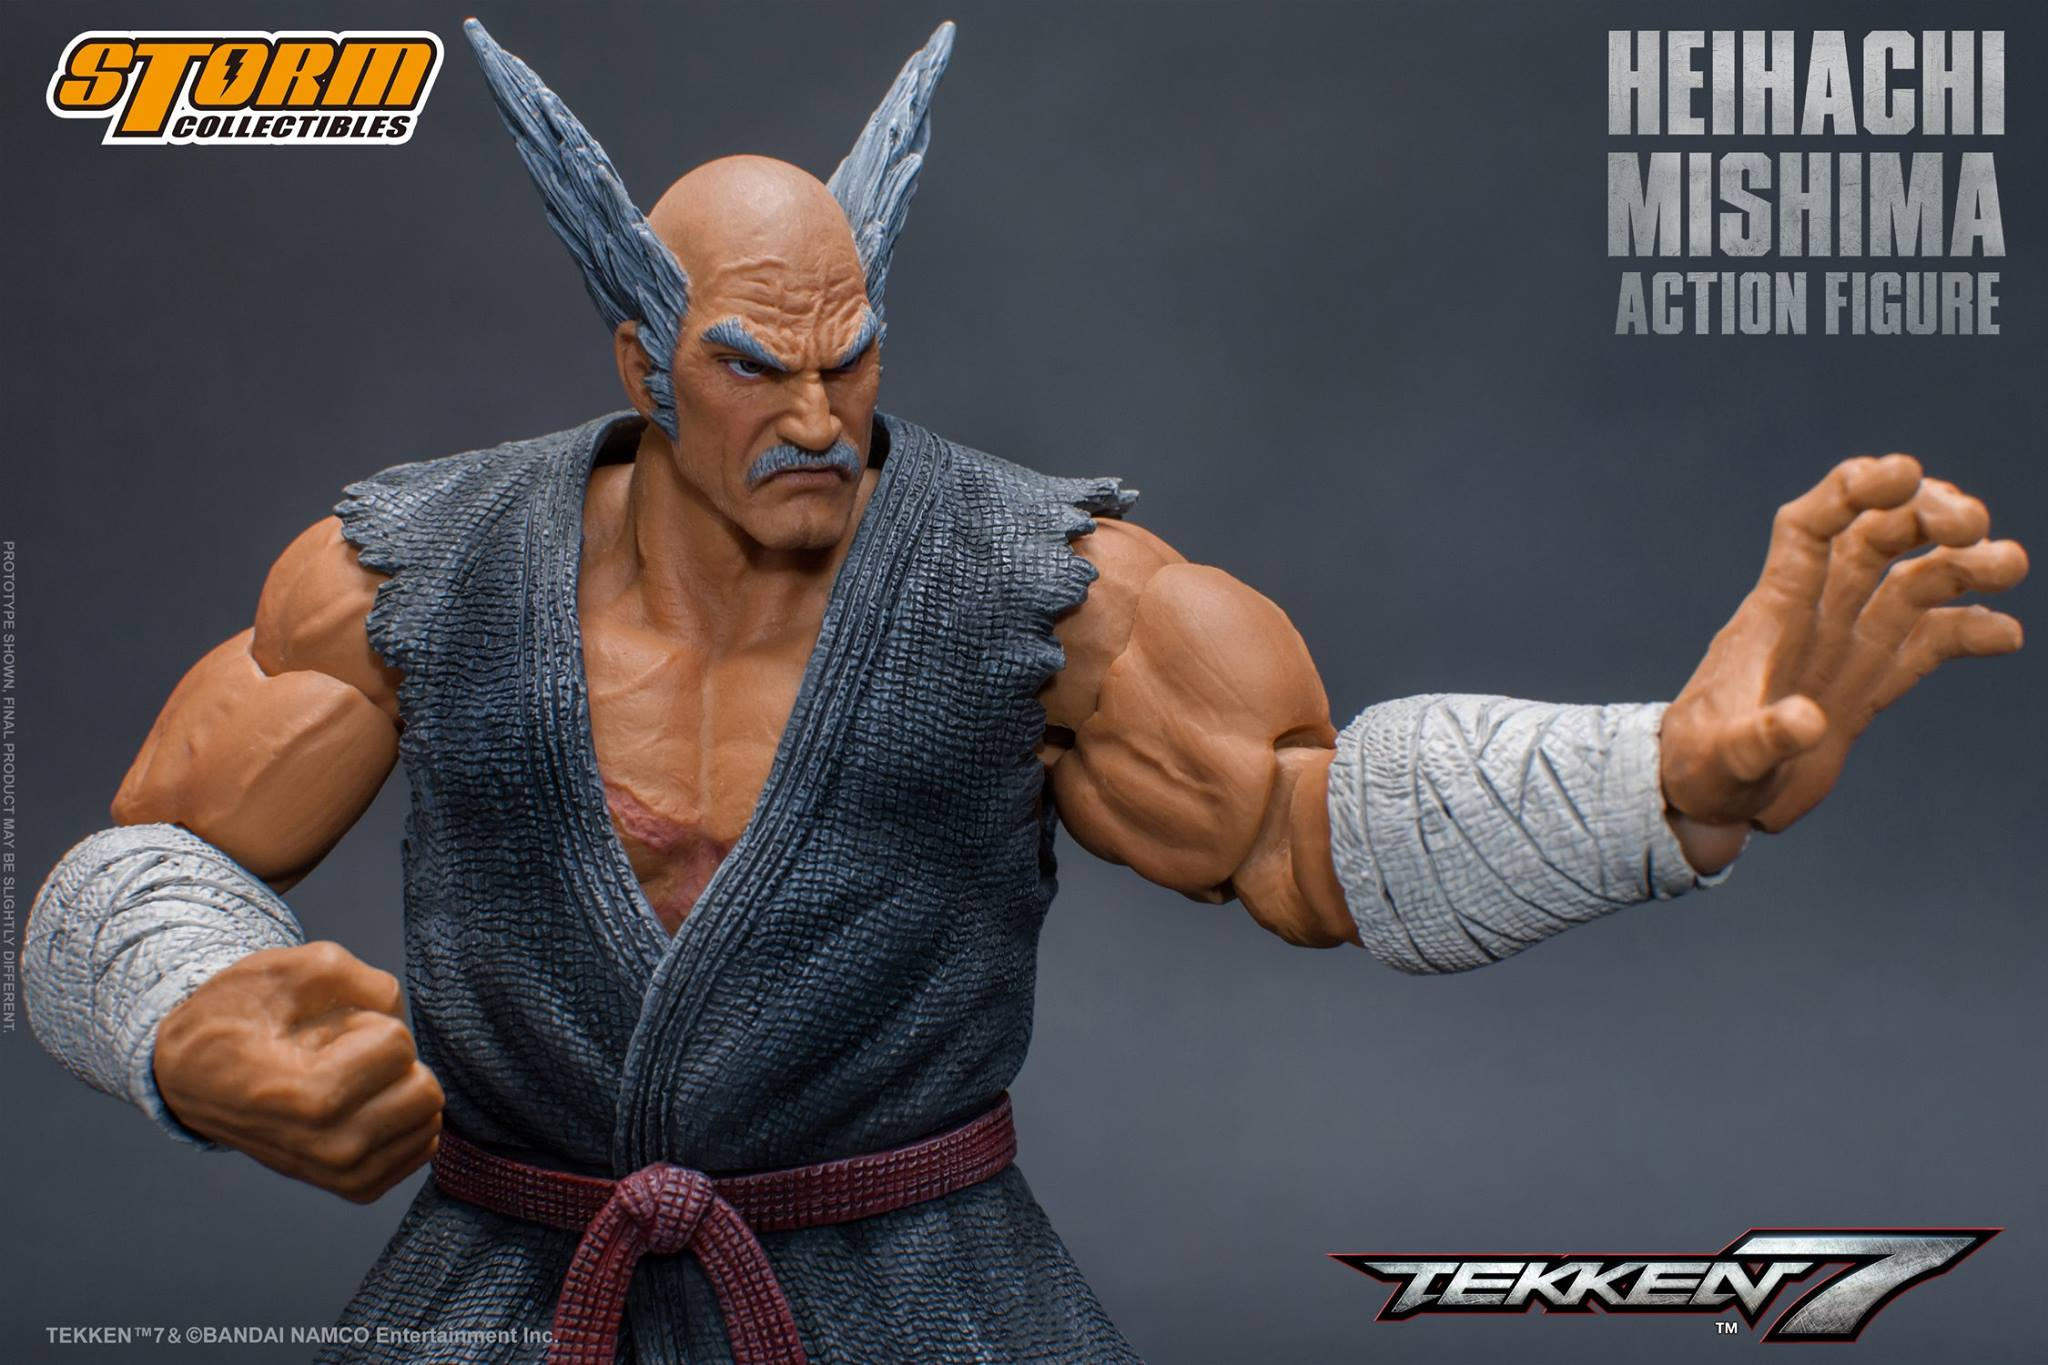 tekken 7 heihachi mishima - photo #36